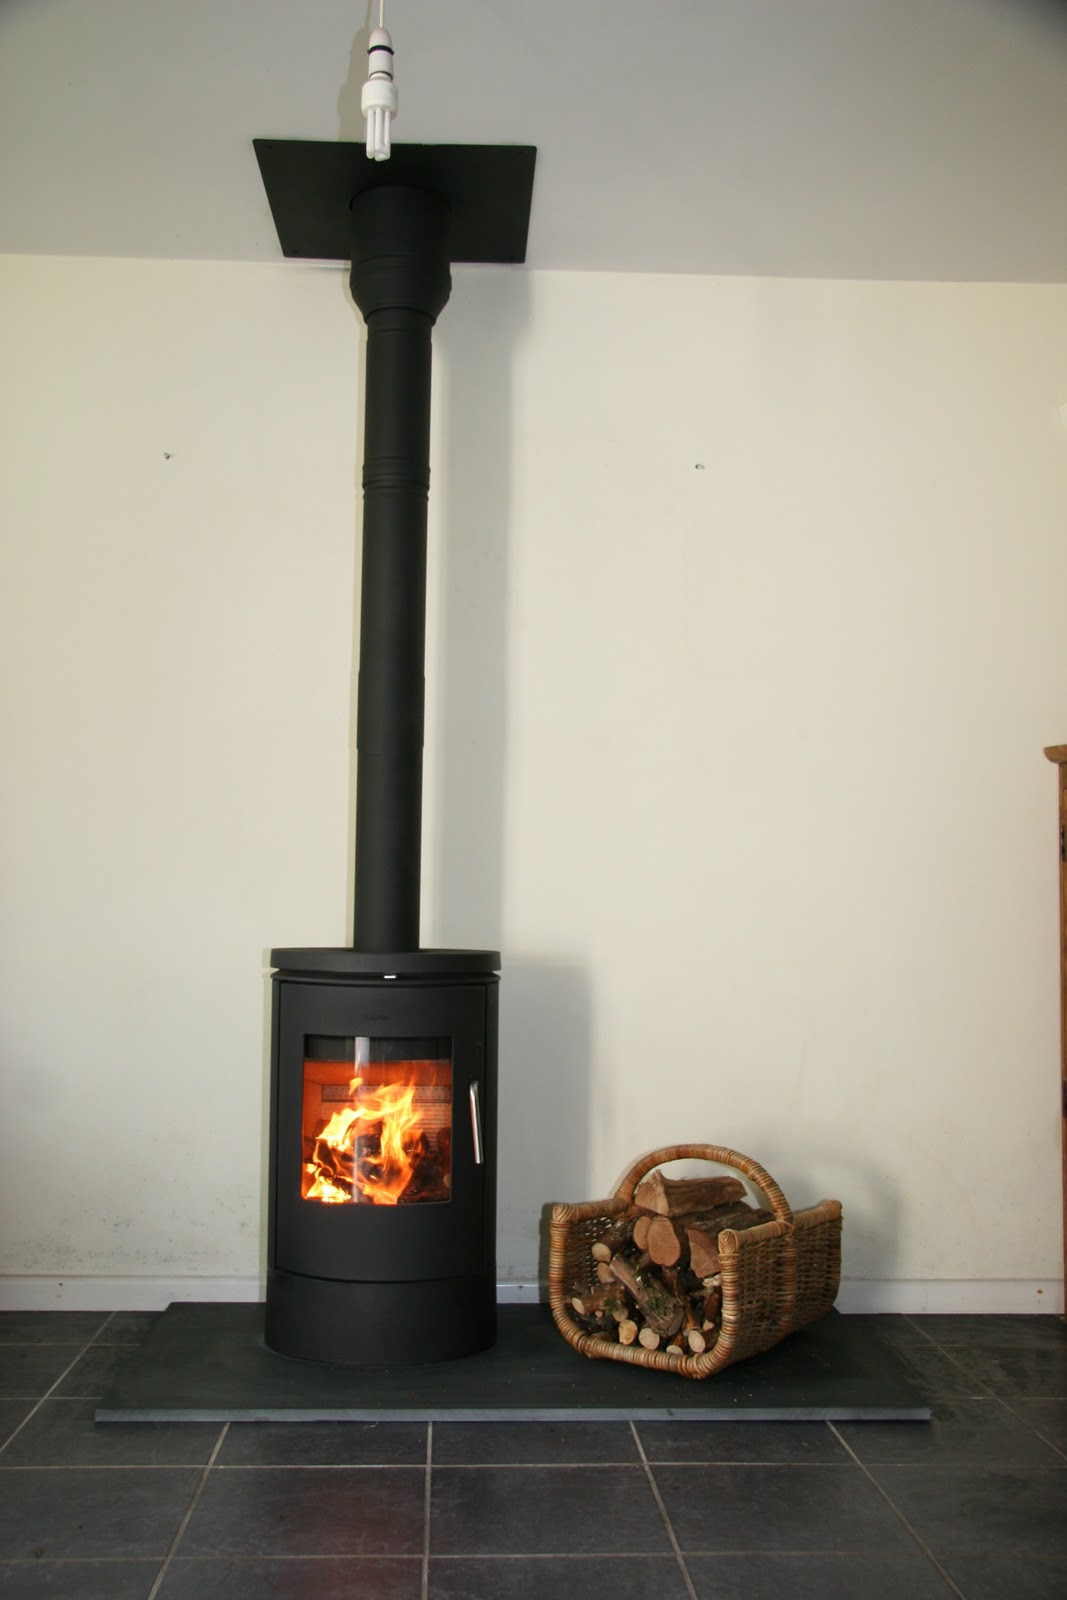 Installing Wood Stove Stove Pipe Through The Wall Home